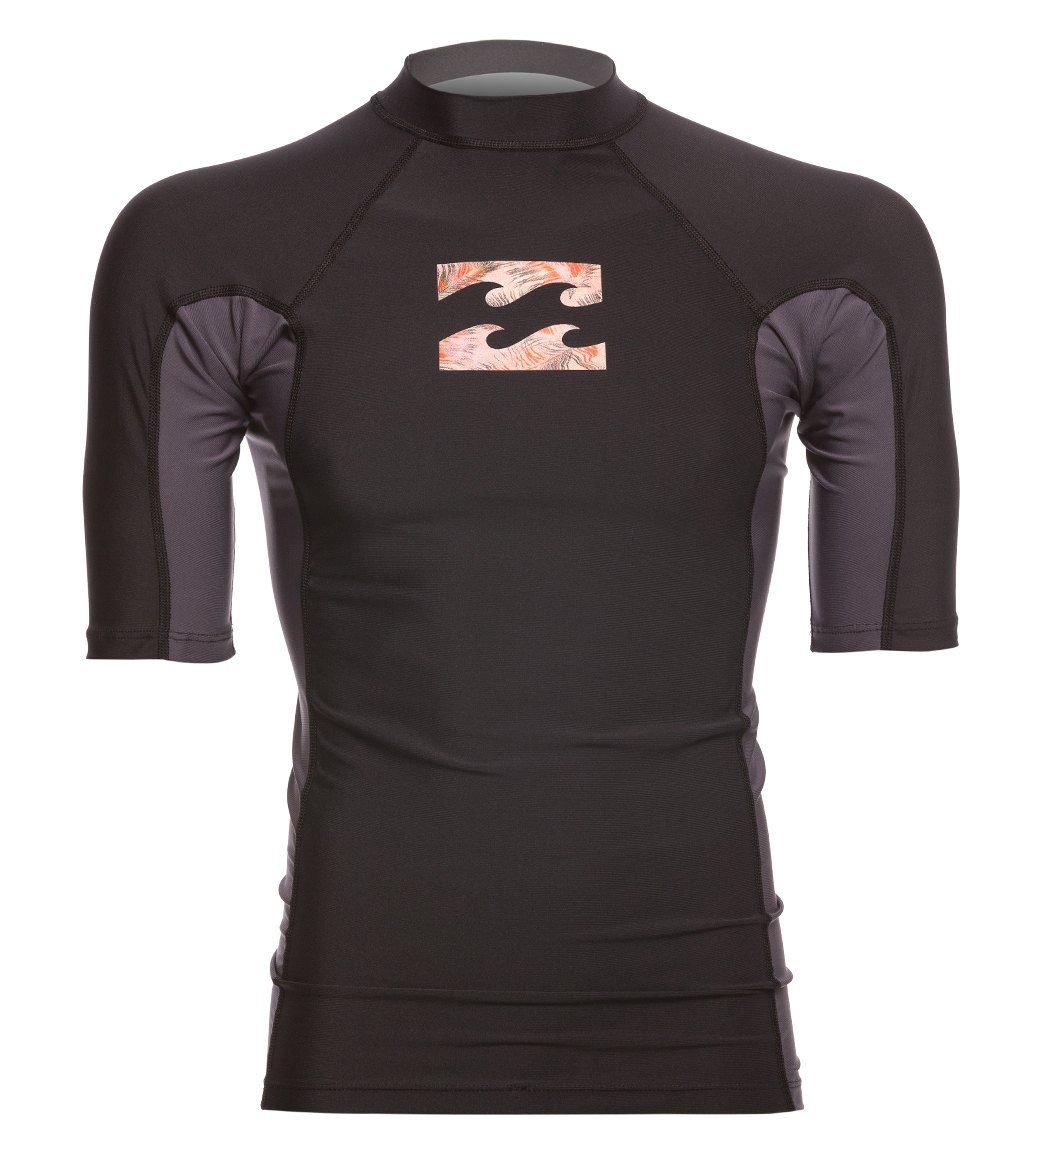 1d6cf0ea54 Billabong Men's Iconic Short Sleeve Rash Guard at SwimOutlet.com